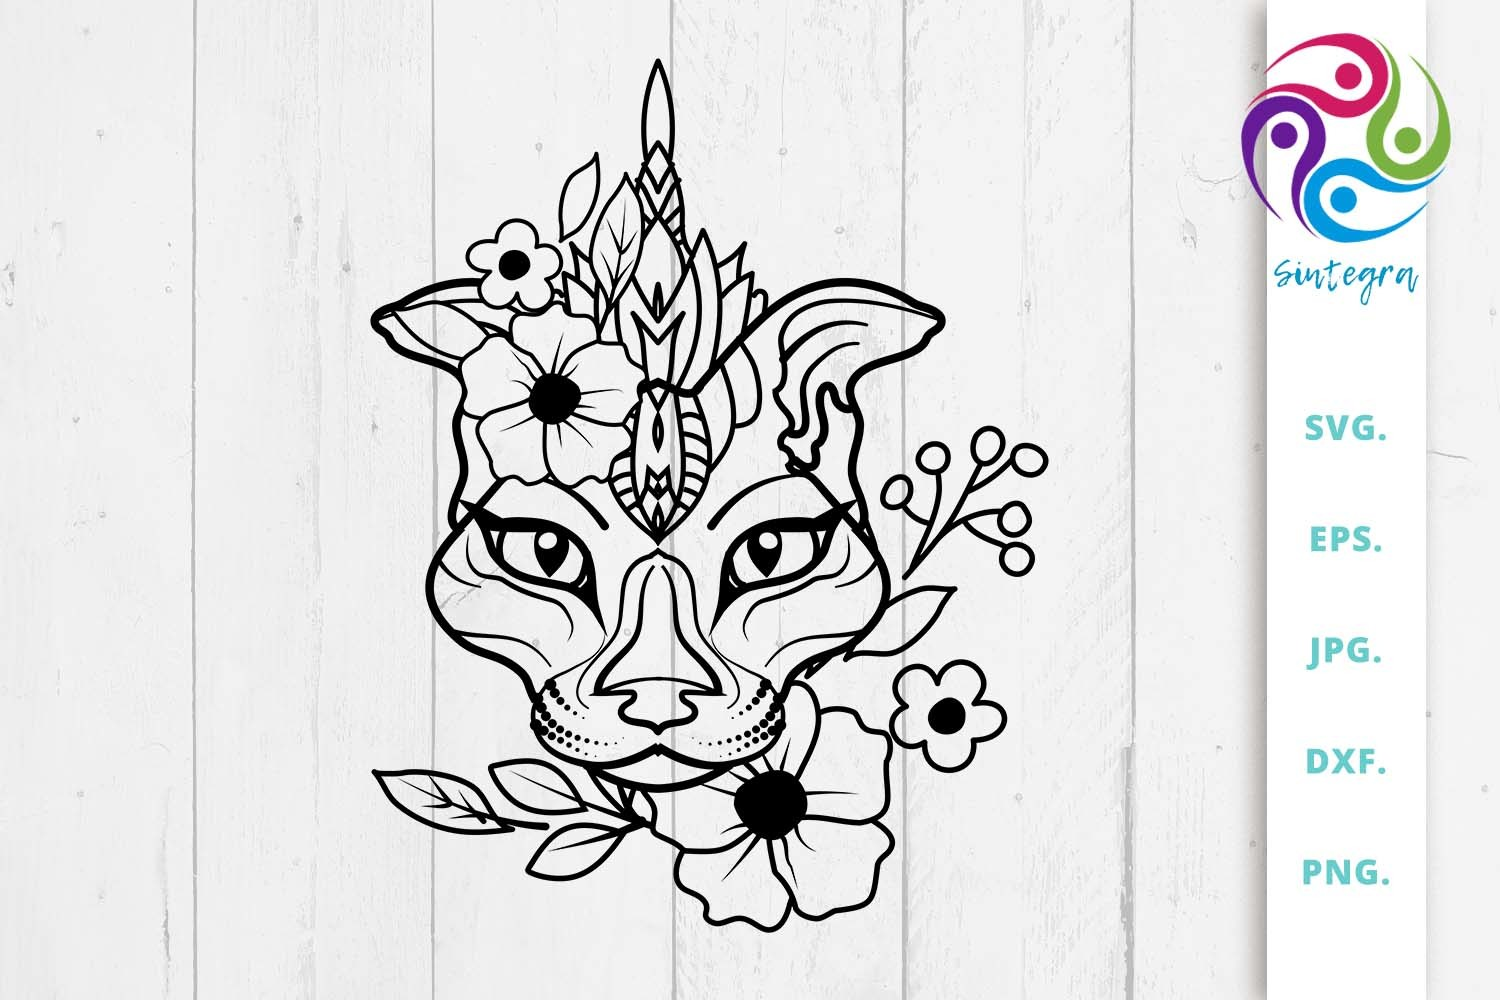 Floral Abstract Cat SVG File SVG File